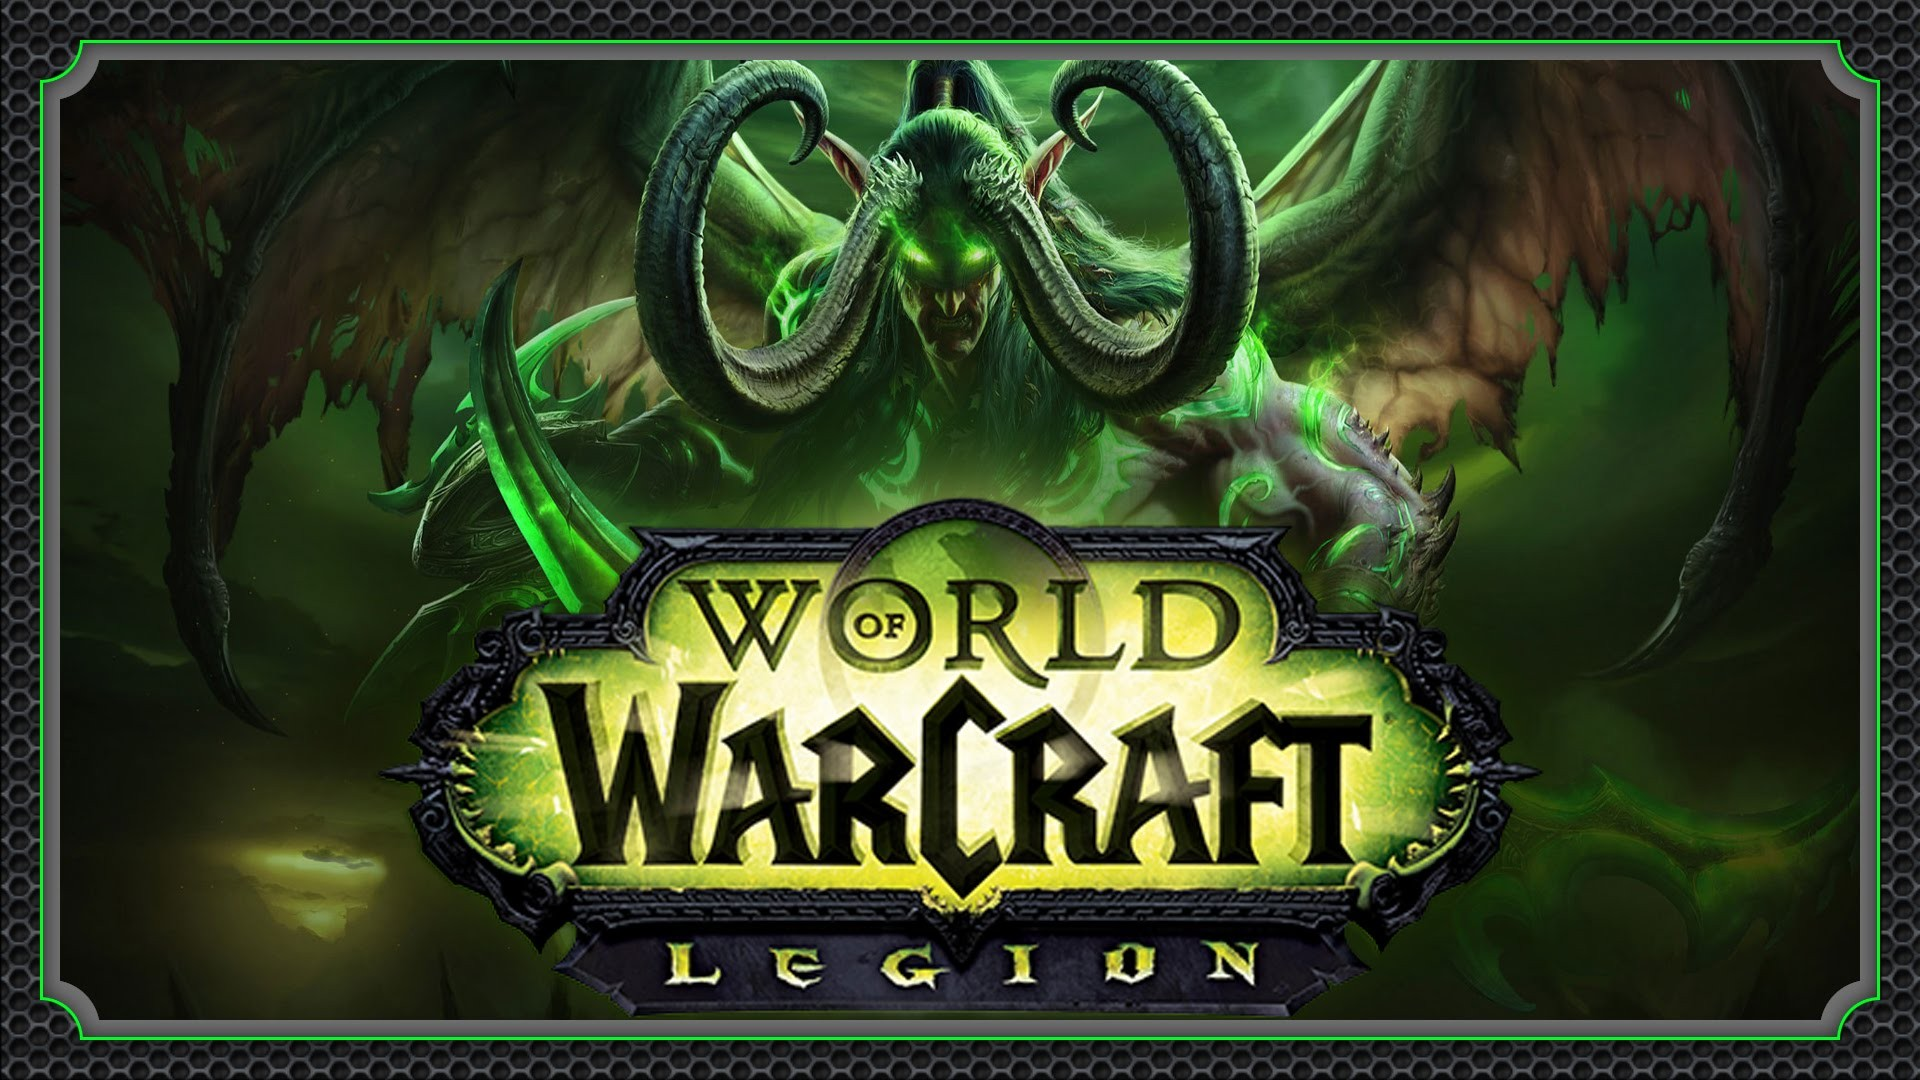 World Of Warcraft Legion Wallpaper Download Free Awesome Hd